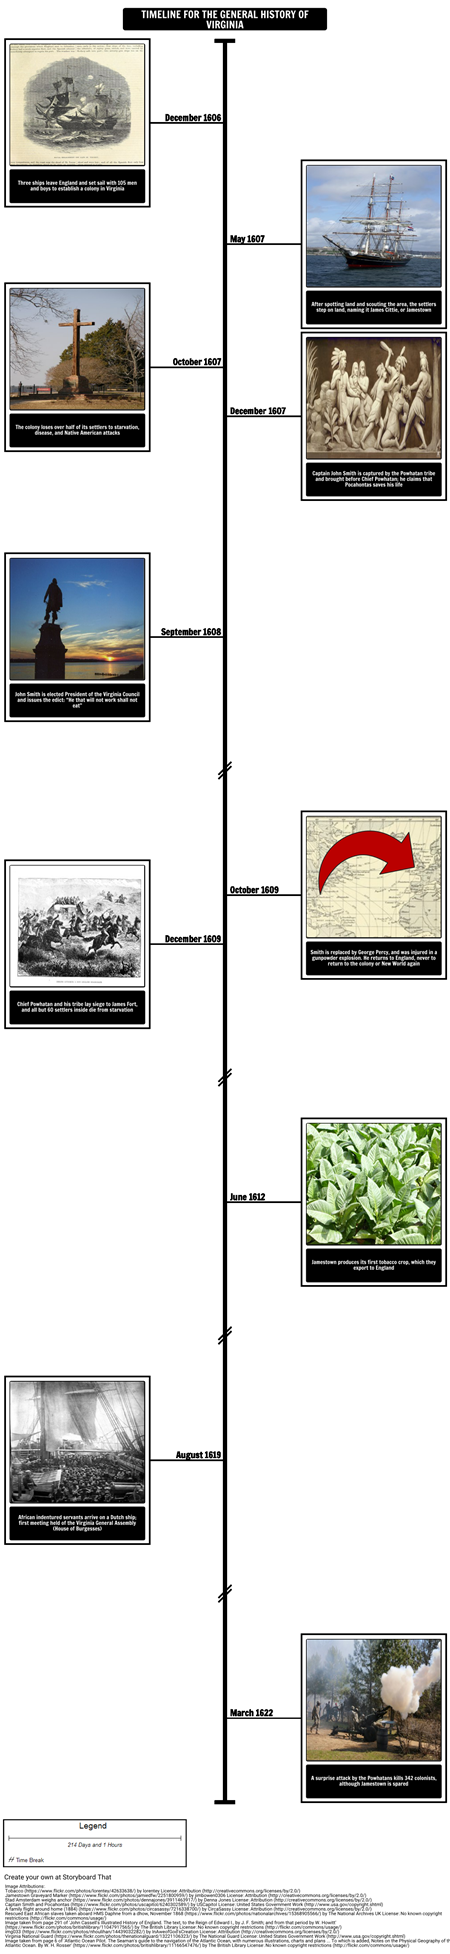 Timeline of the General History of Virginia